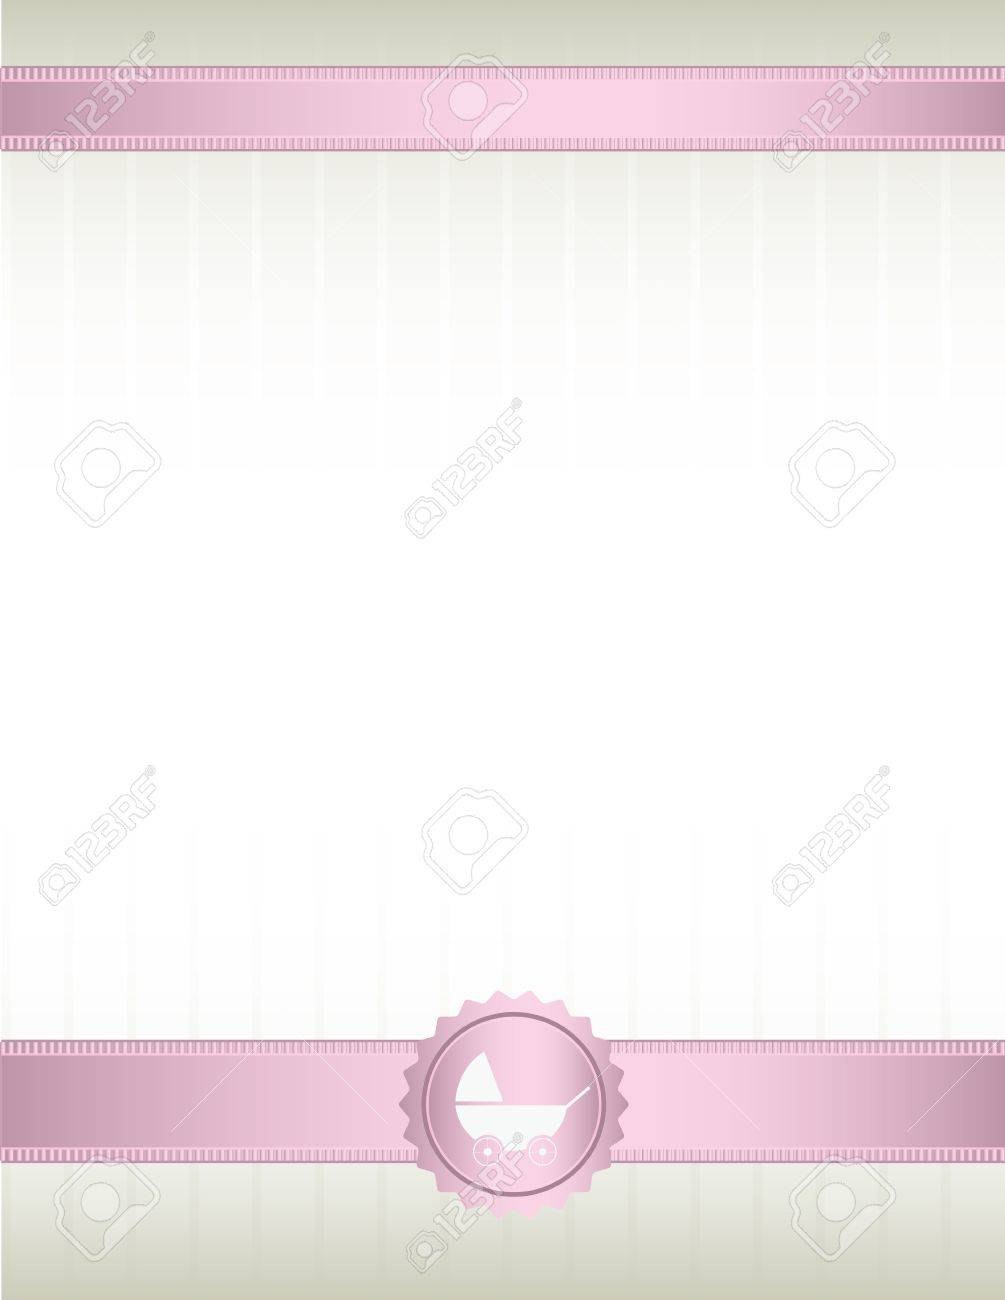 An off white background with pink ribbons at top and bottom and a baby stroller seal design Stock Vector - 7315147